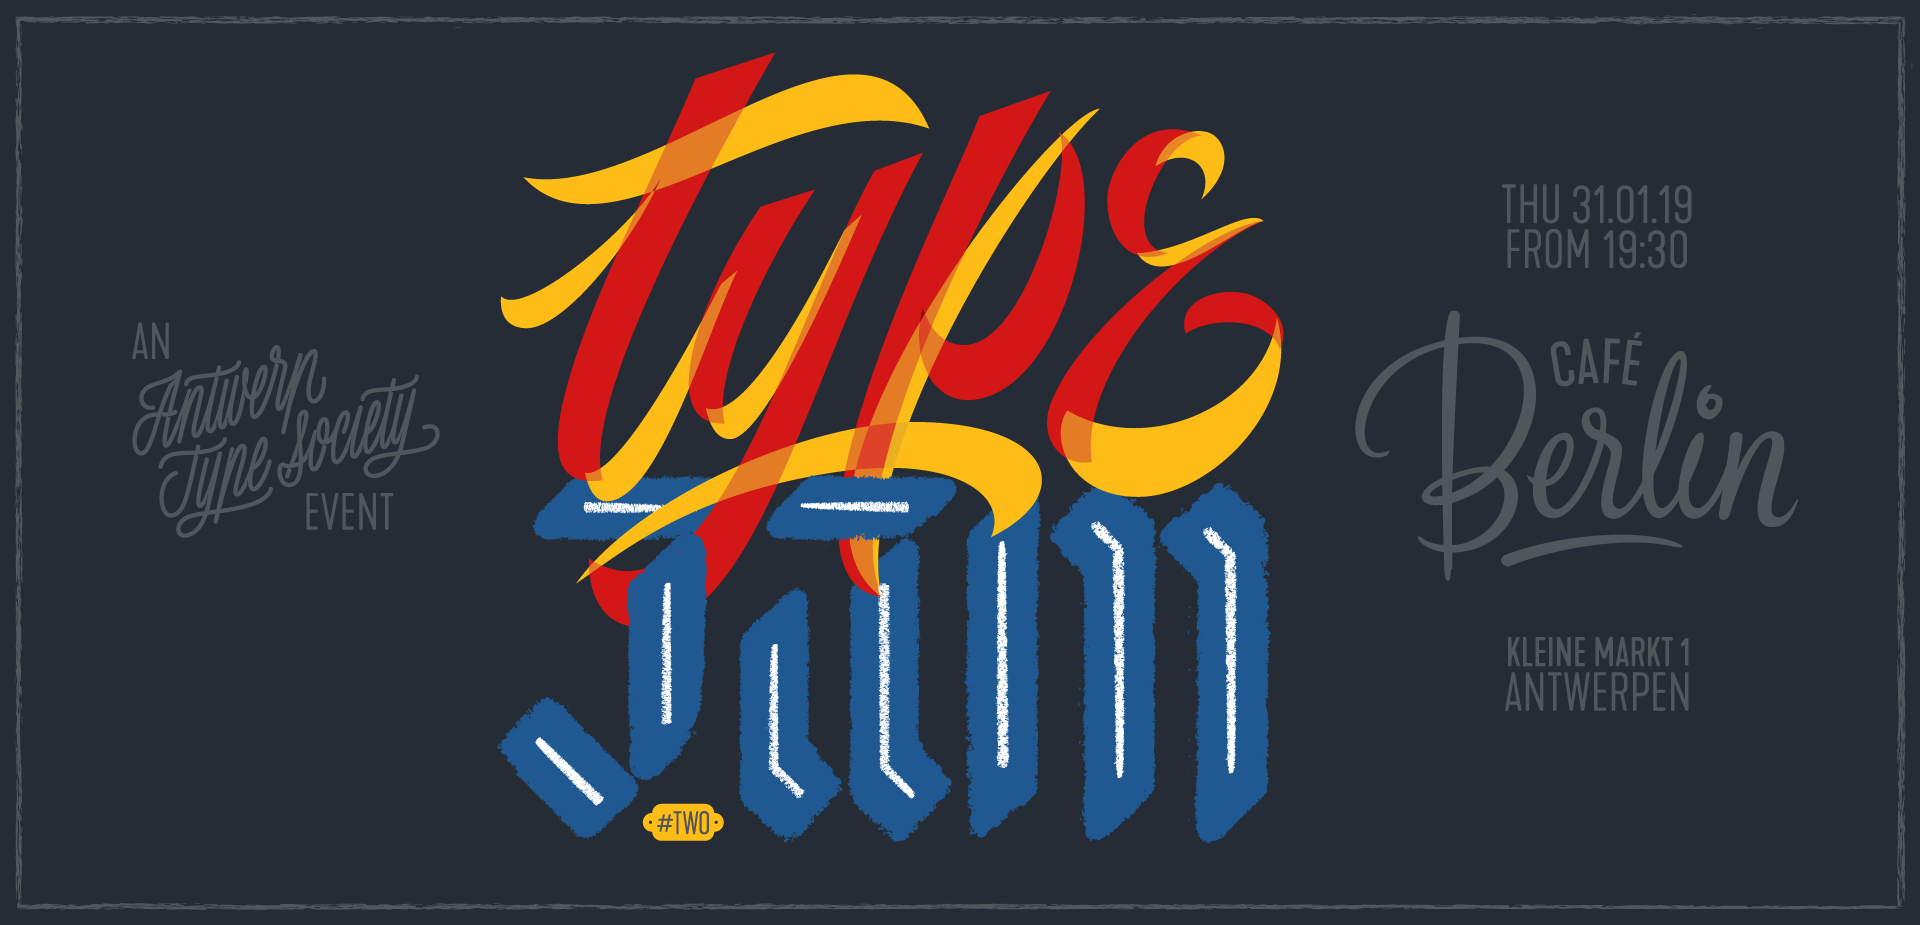 ATS_Typejam#2-artwork(1920).png